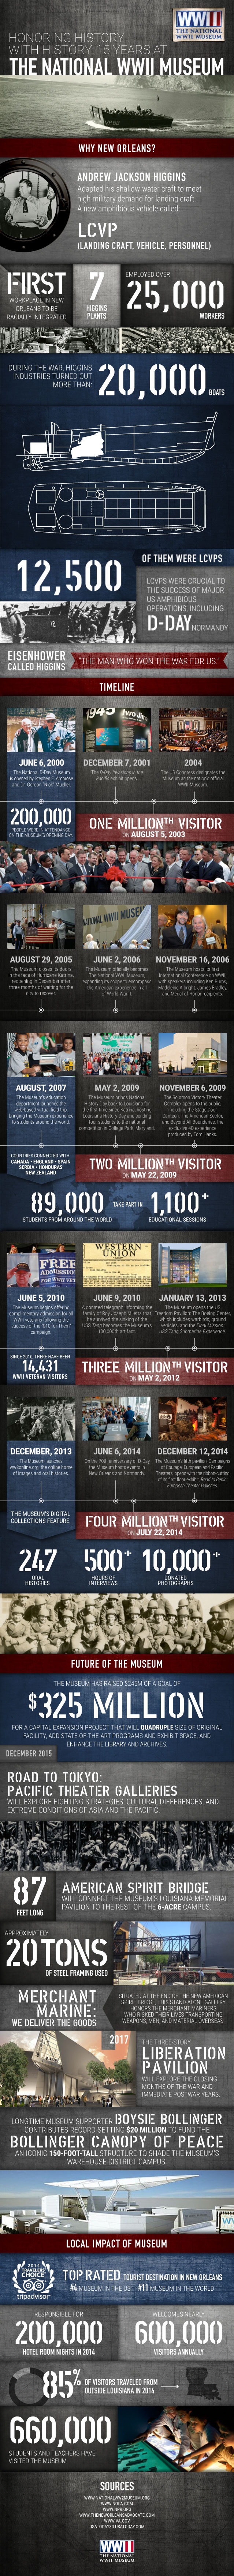 15 Year Anniversary Infographic - 2015 - The National WWII Museum